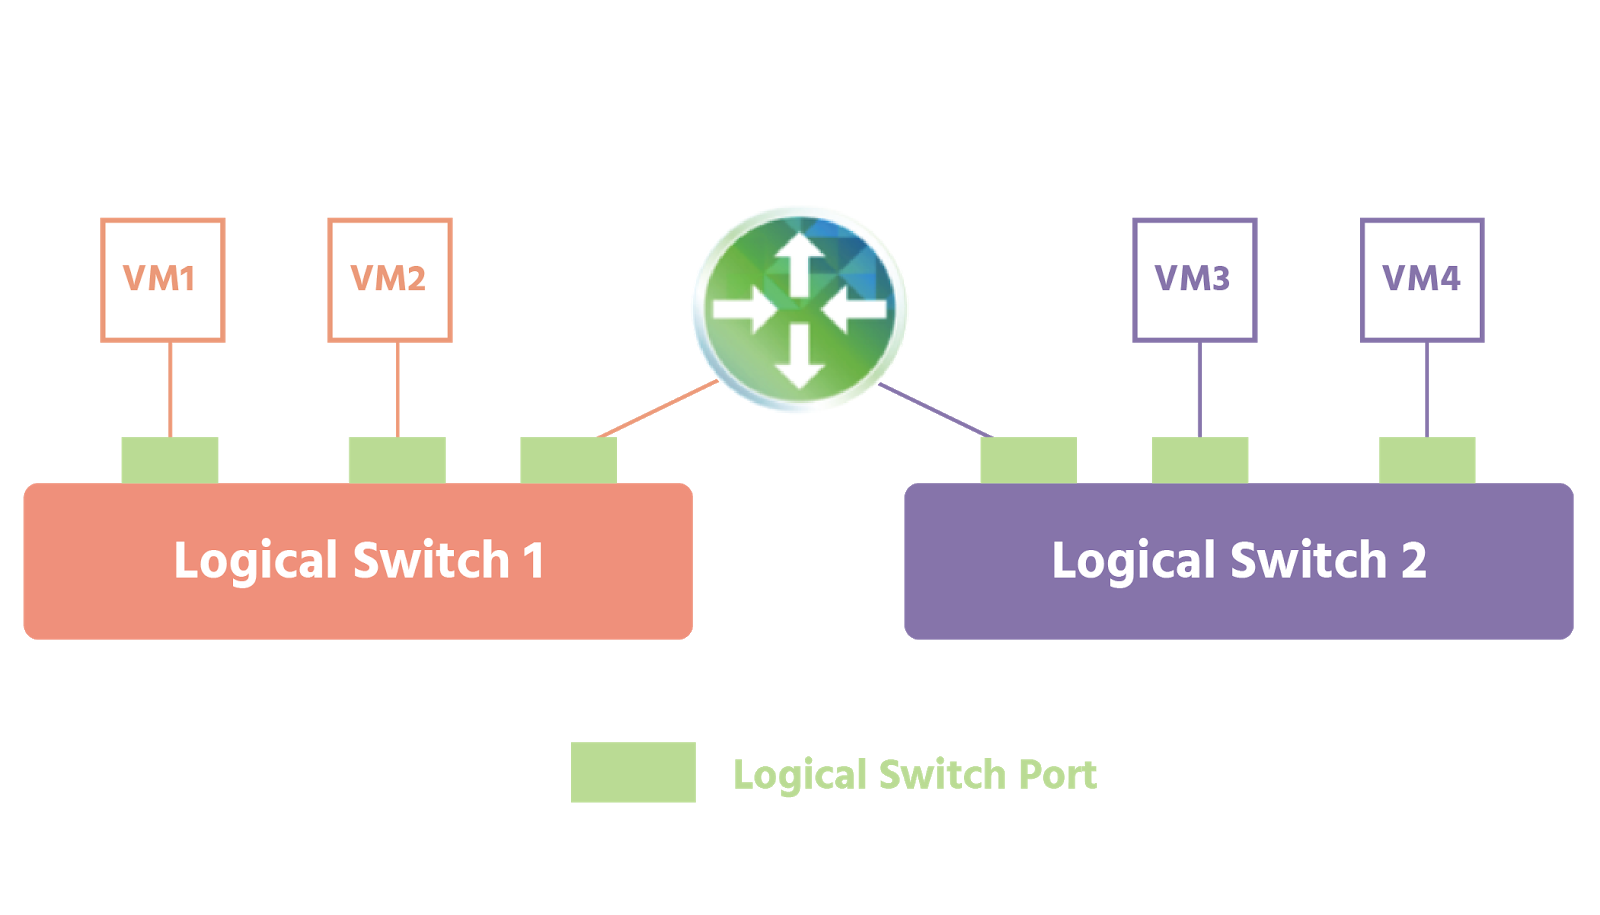 Logical switch 1 has three ports: two are connected to VMs; one is connected to a logical router; logical switch 2 also has three ports: one is connected to the same logical router as logical switch 1, the other two are connected to two separate VMs